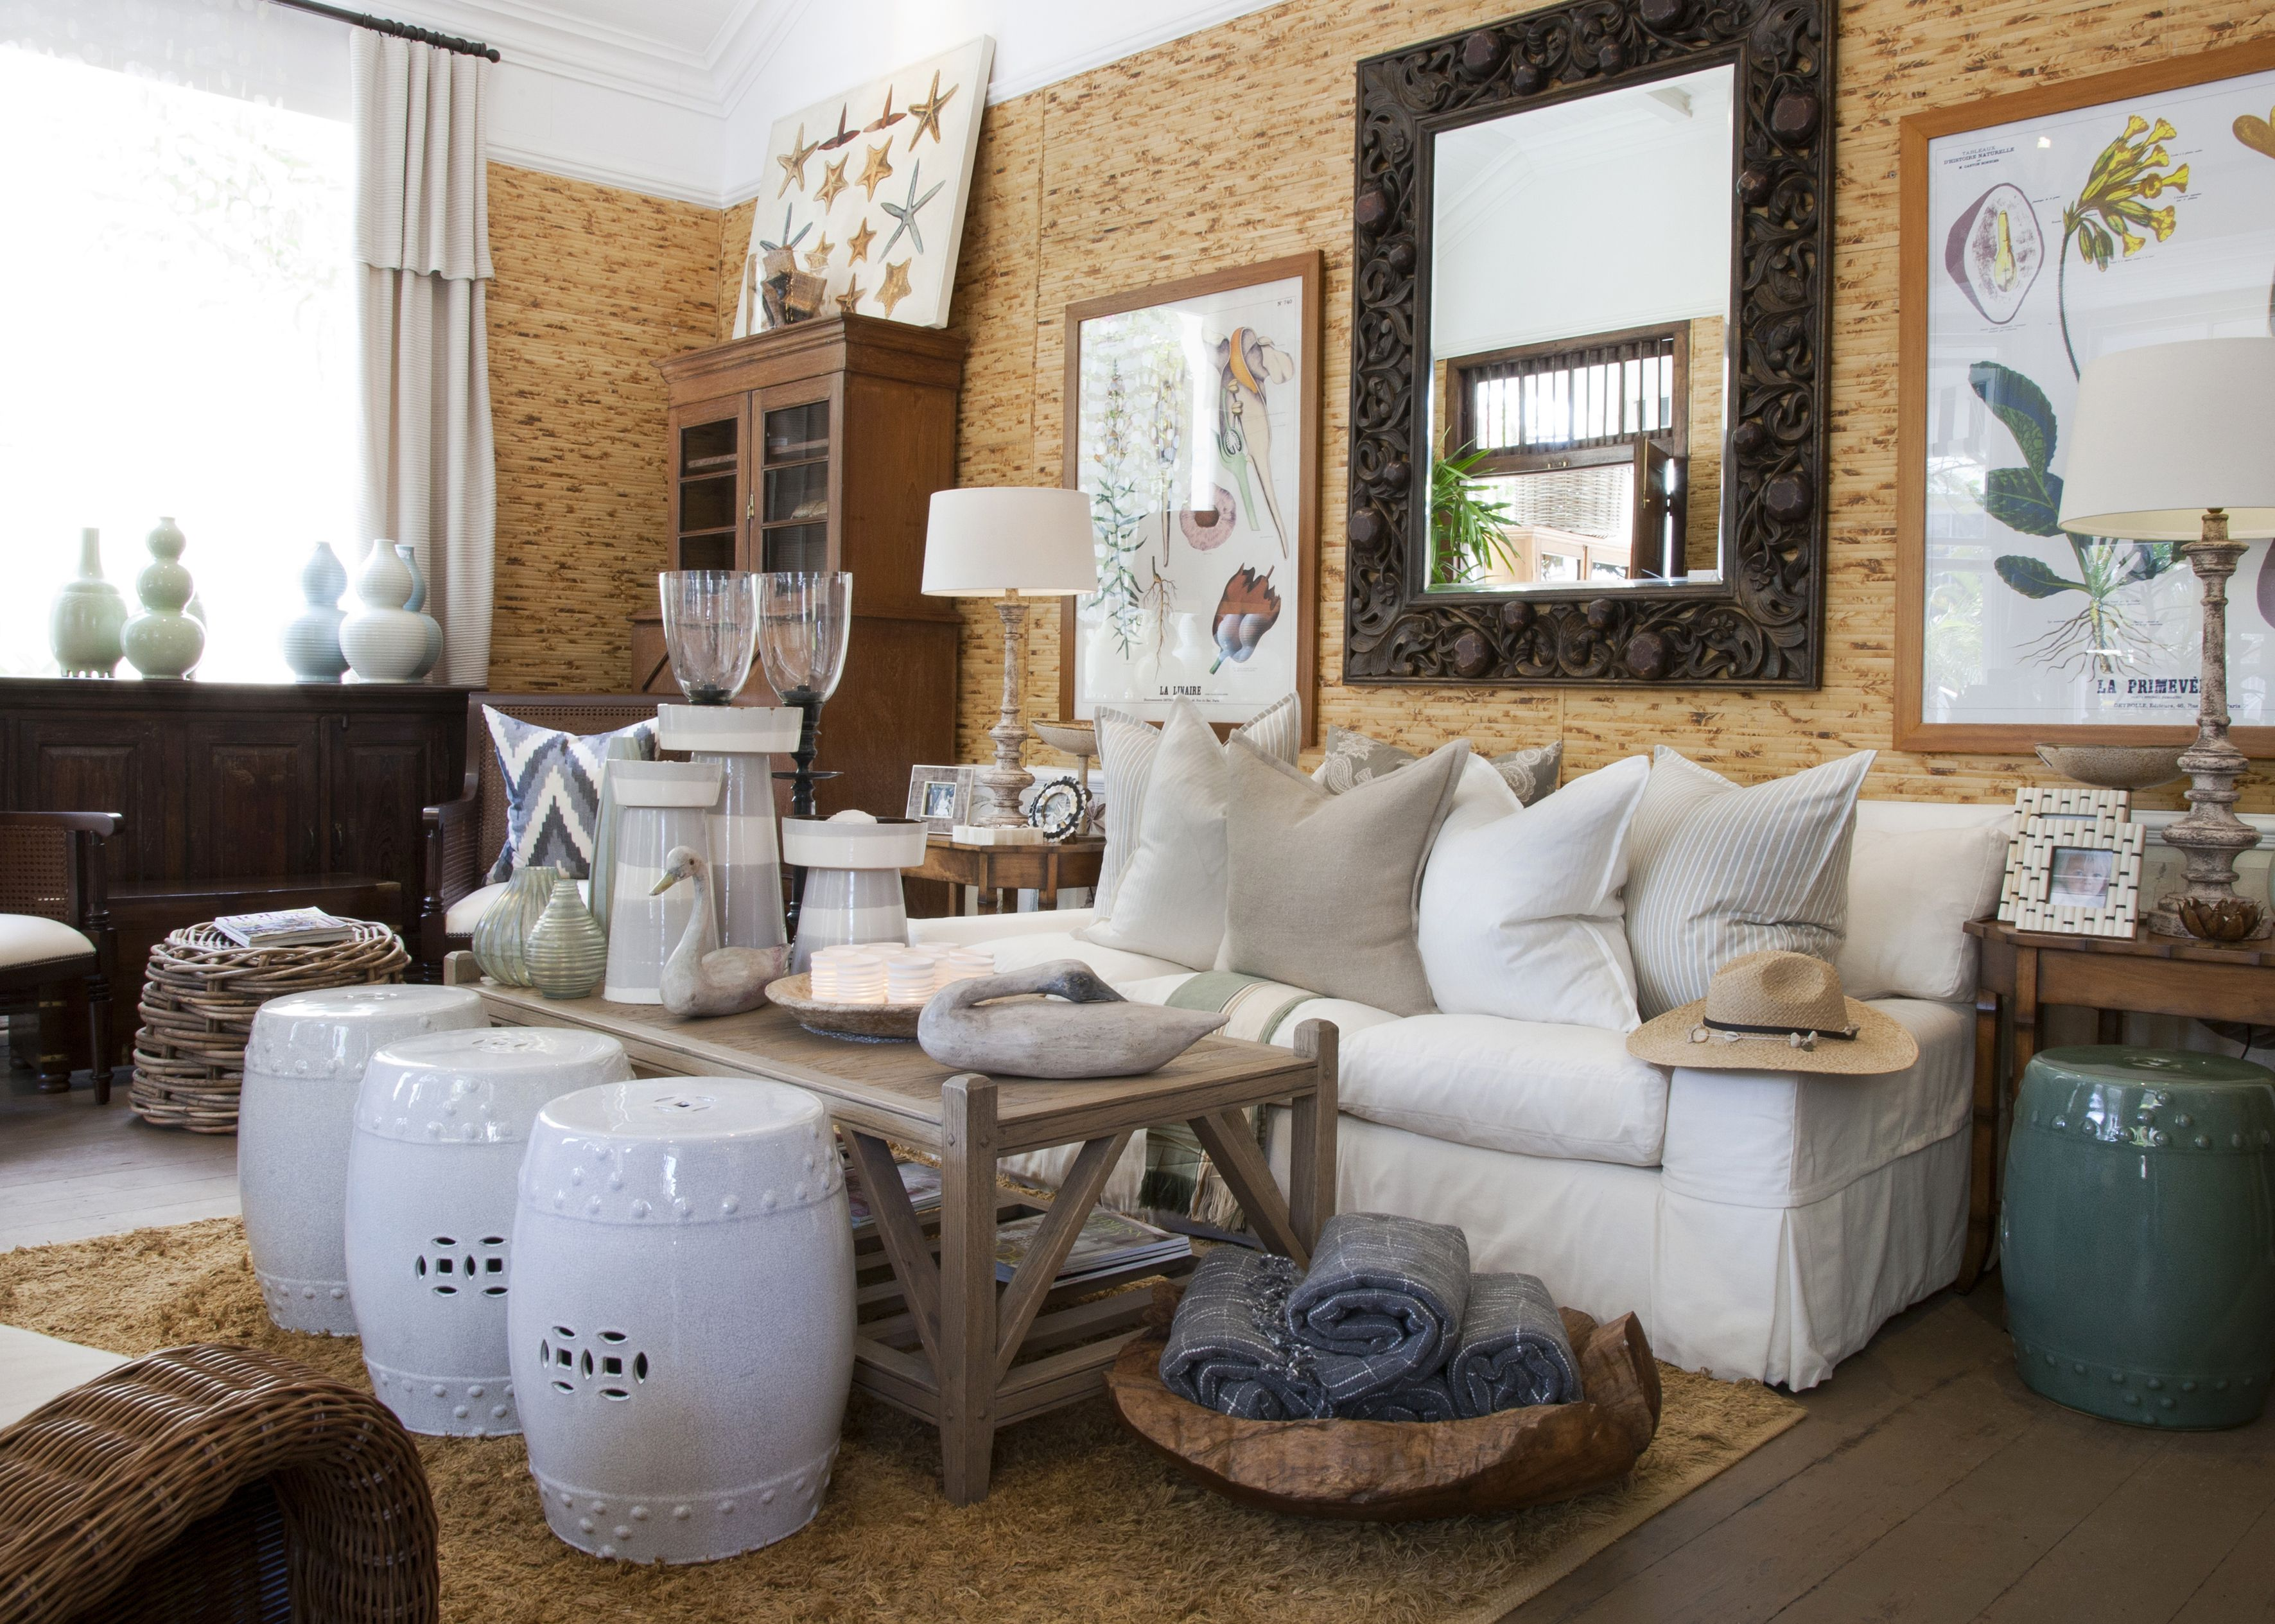 Cécile and Boyd s Durban shop located on the fashionable Florida